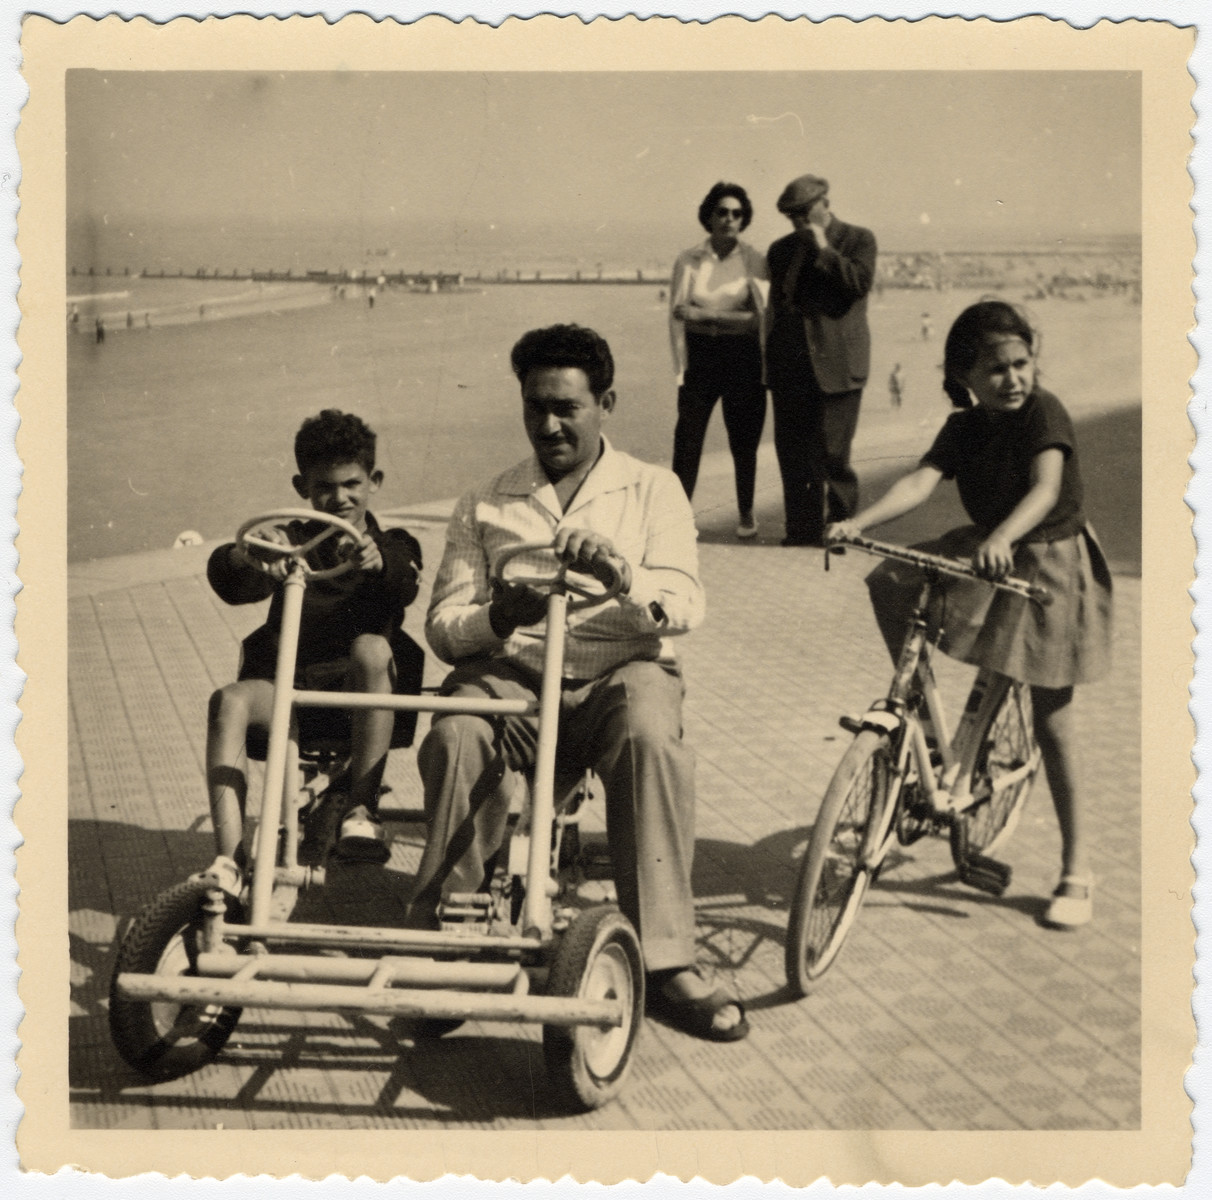 The Sephiha family visits the seaside resort, Le Zout.  Pictured in the cart are Dominique Vidal and his unle Albert.  On the right is his cousin Dany,